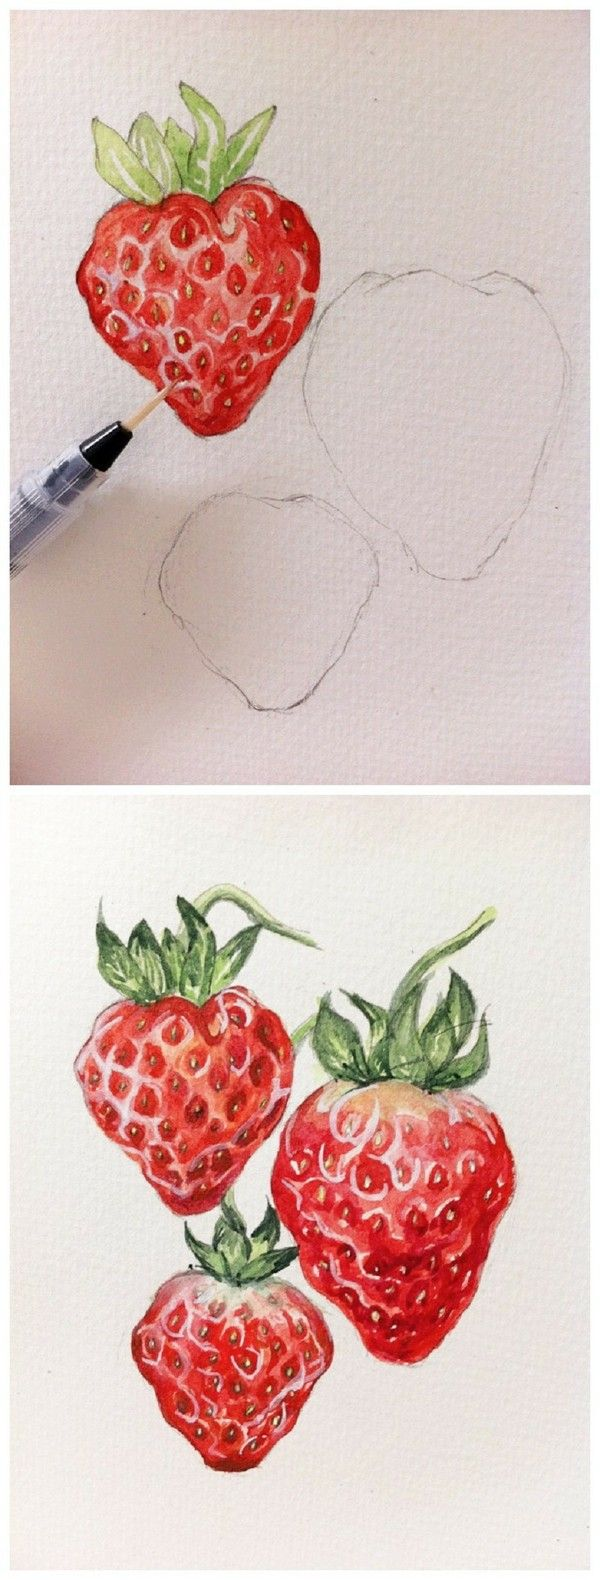 Colour pencil drawing tutorial #Fruit illustrations# strawberry